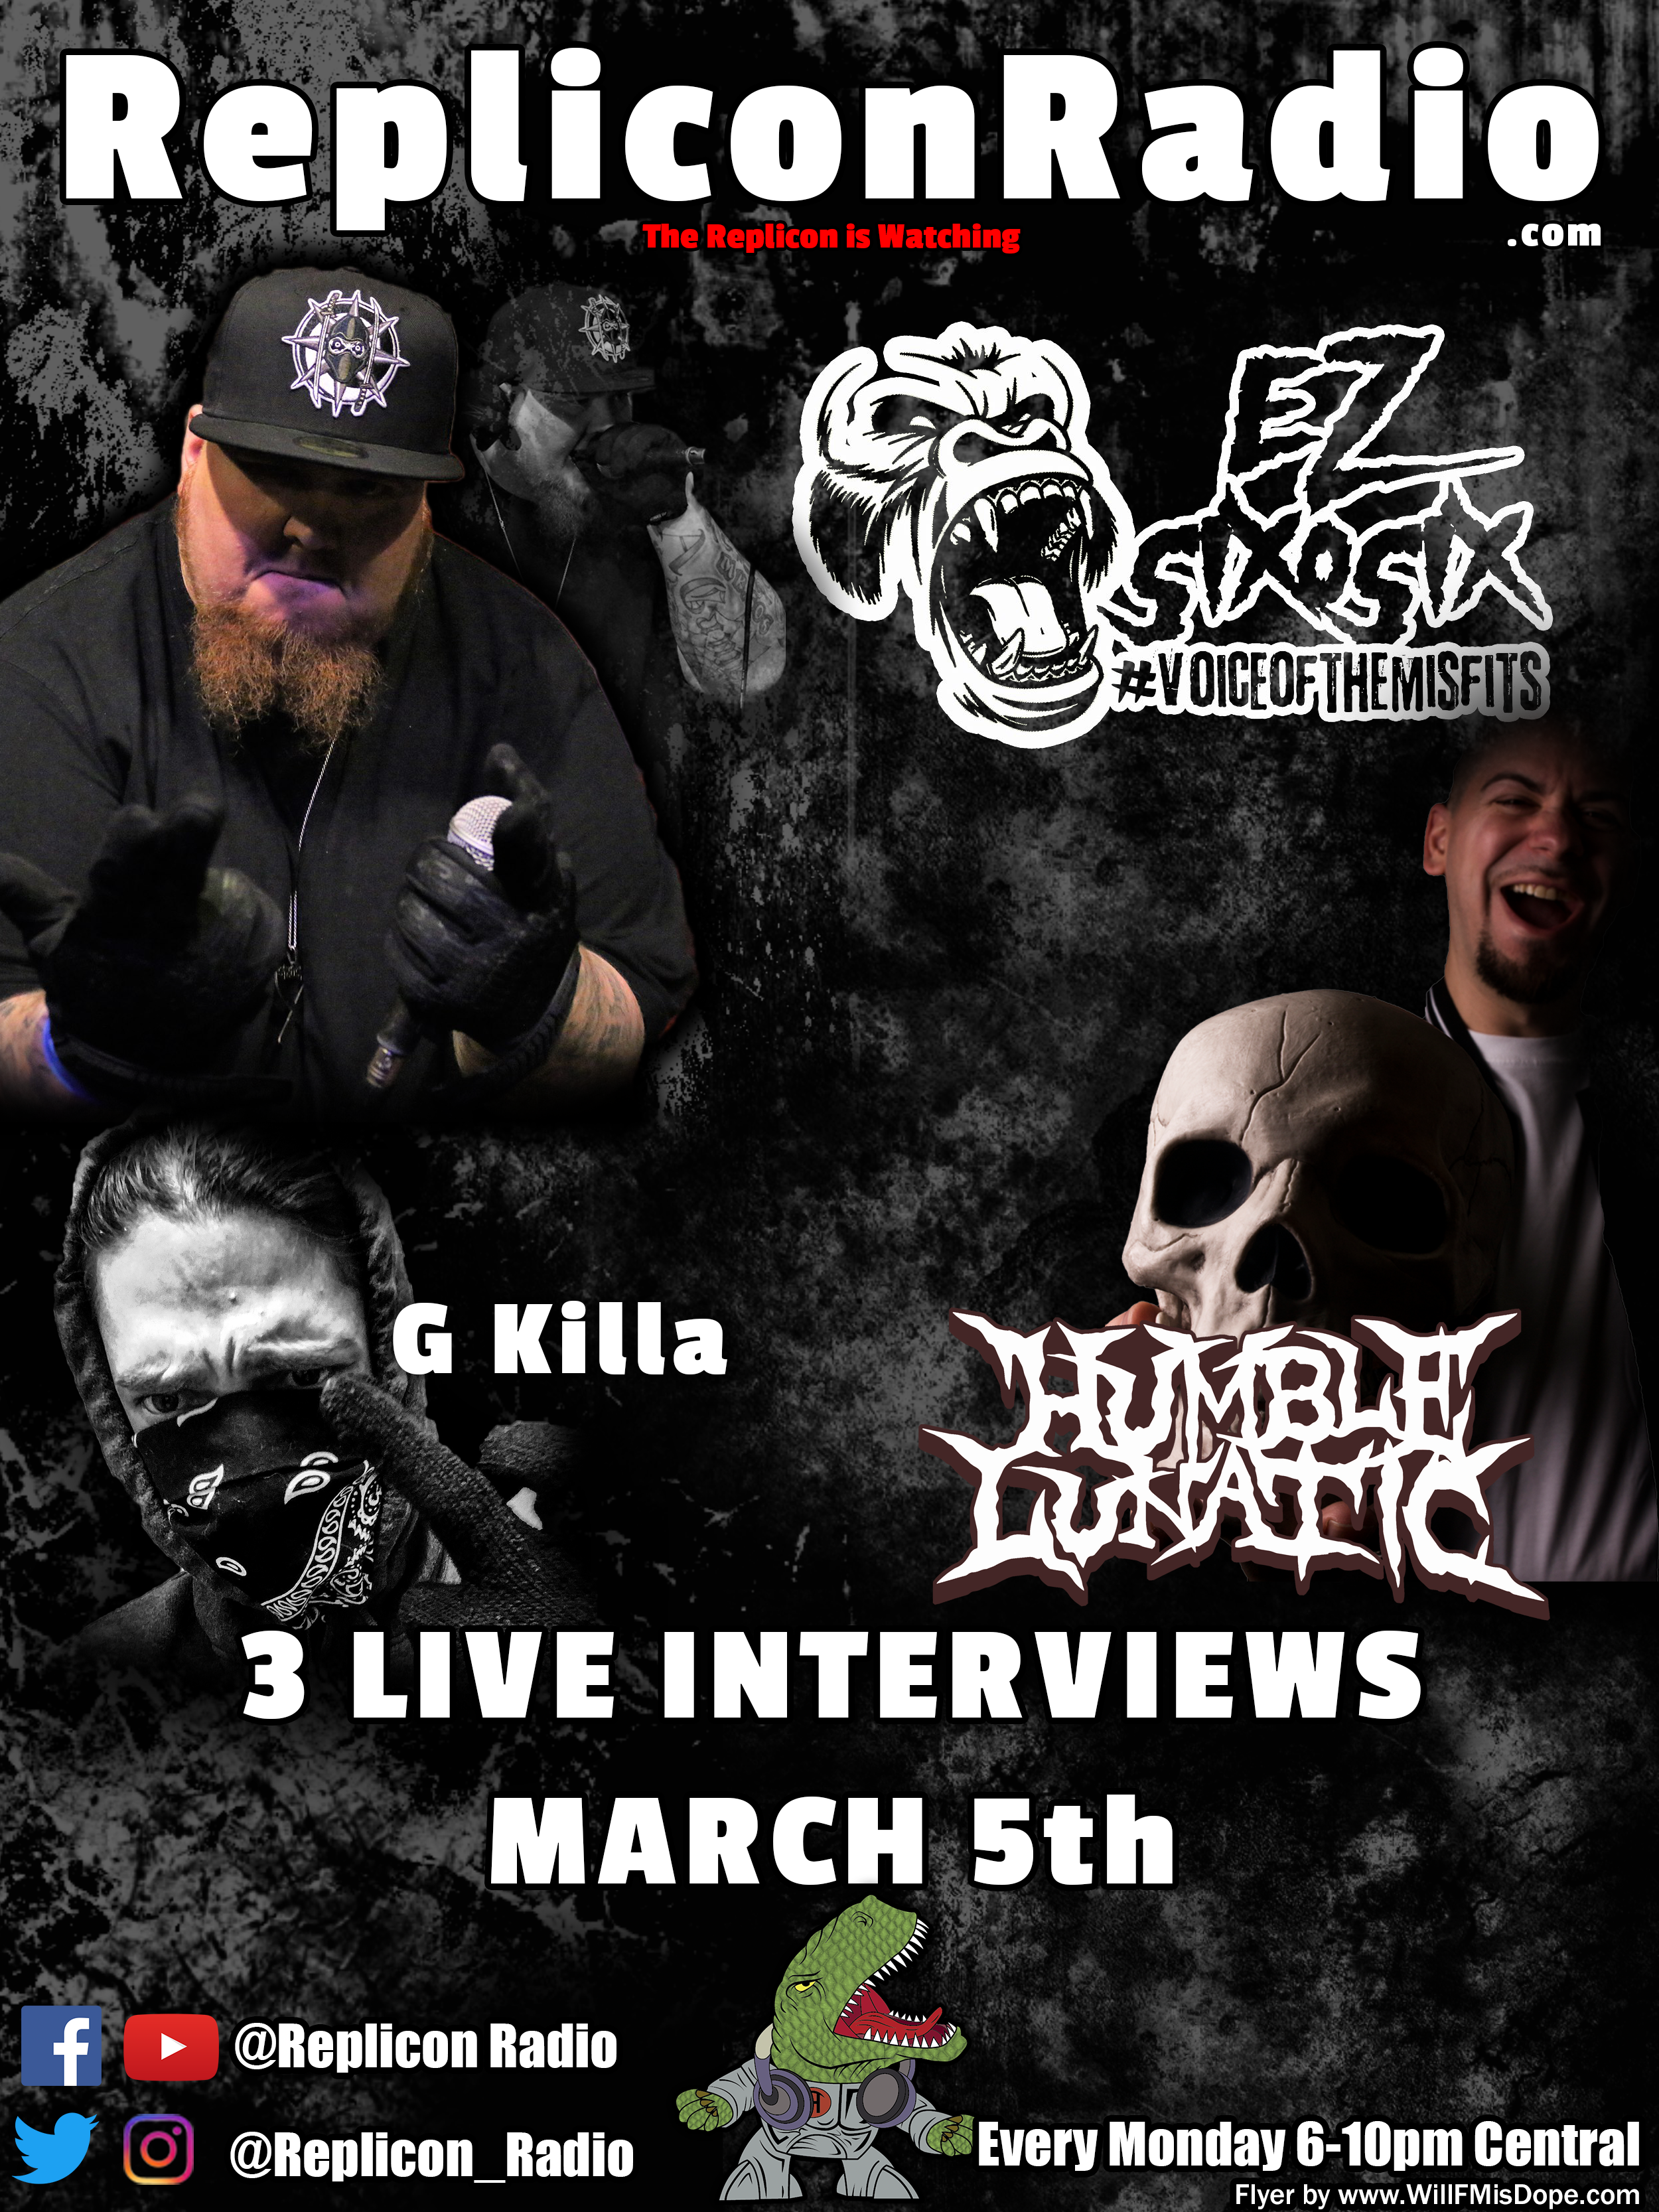 Replicon Radio is interviewing me and 2 other artists on Monday March 5th at 7:45 CST. Head over to RepliconRadio.com